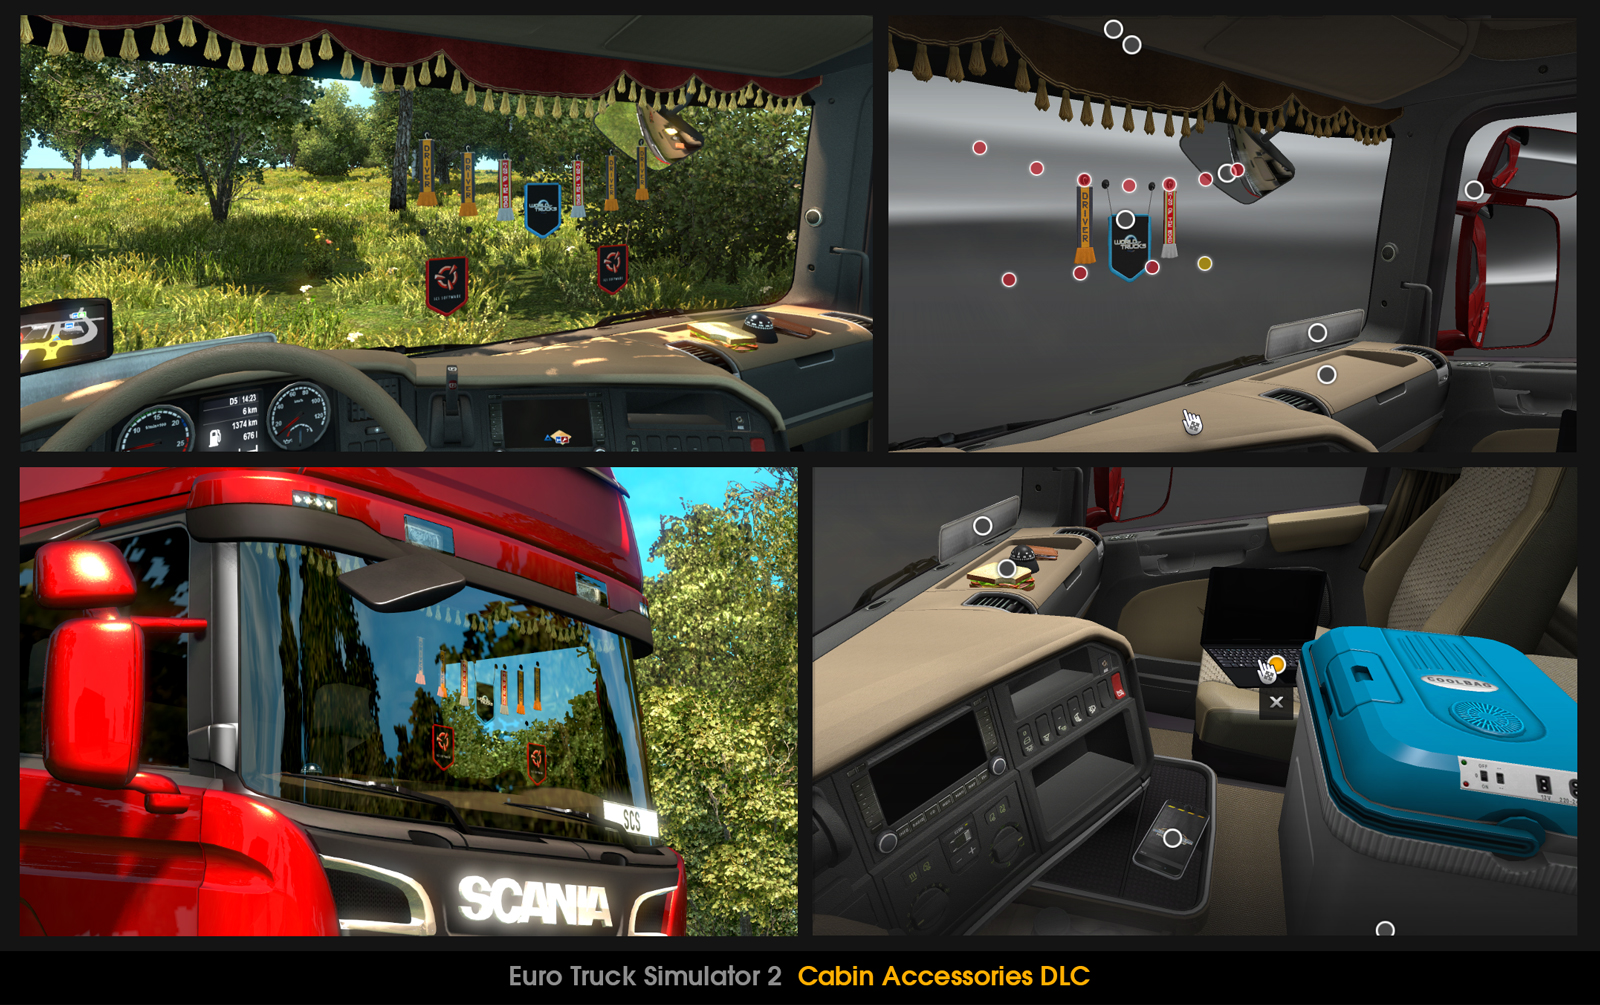 cabins accessories cabin simulator cis buy download itm euro gift truck and